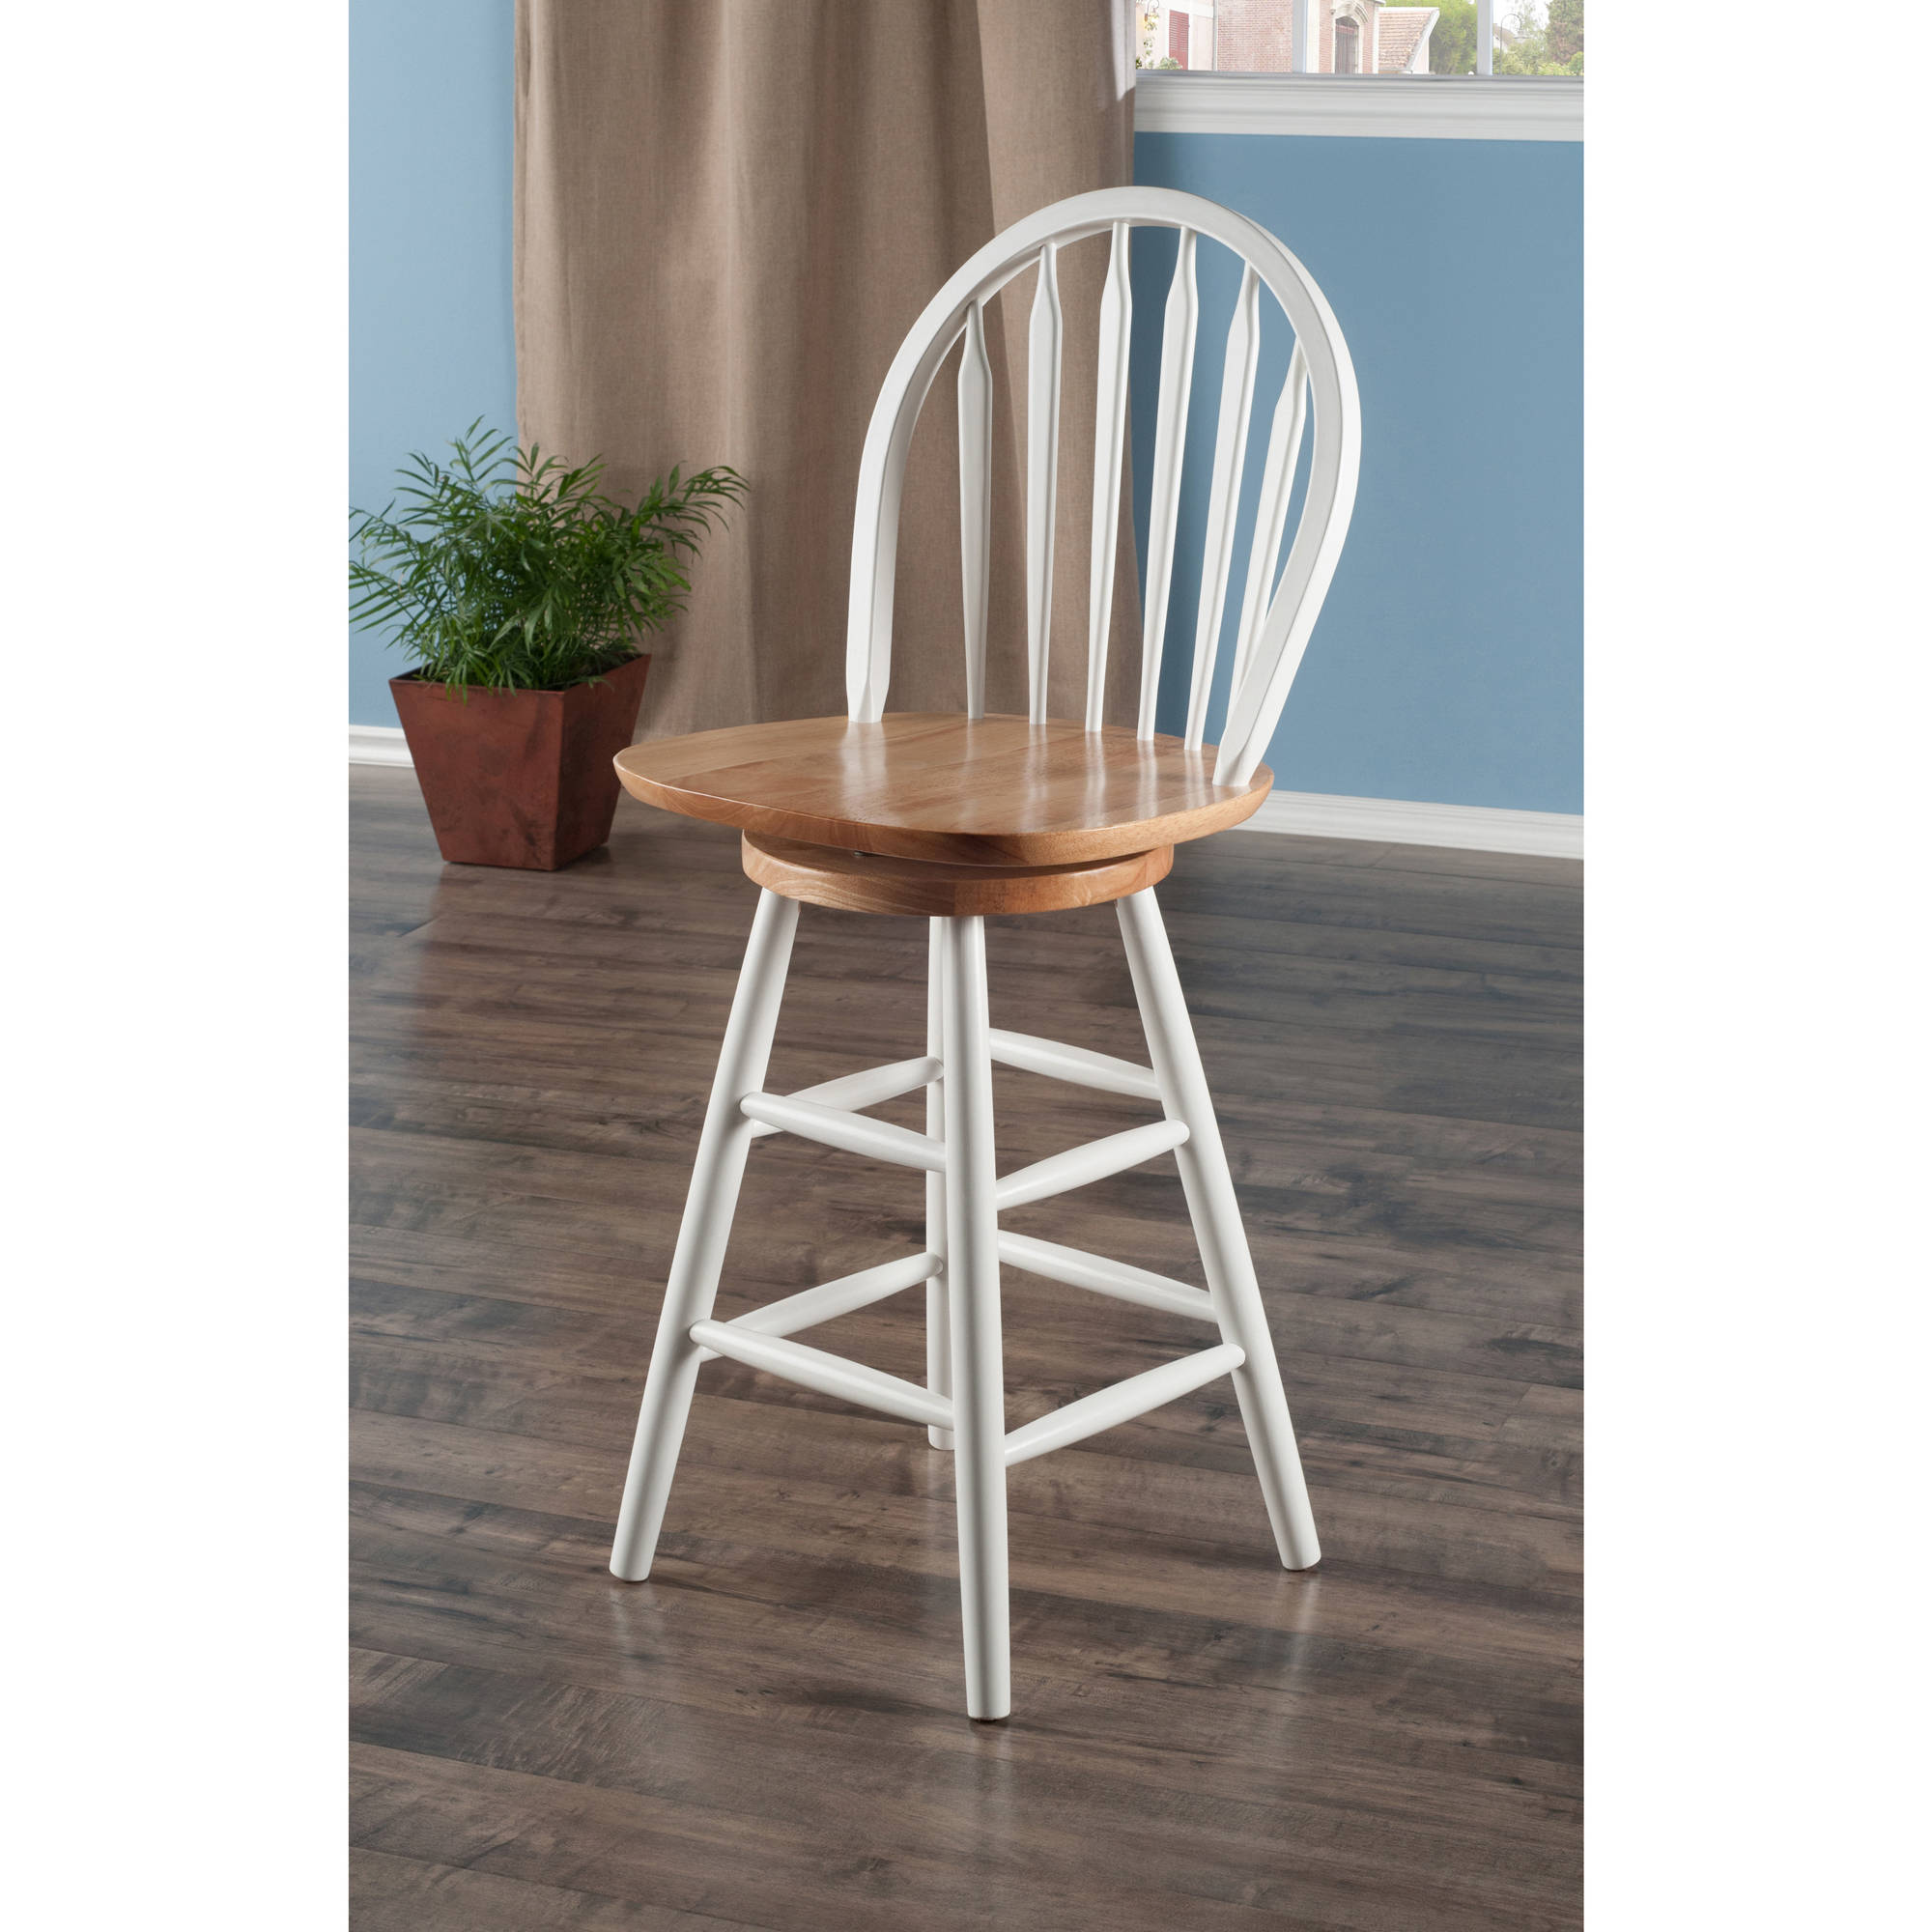 Arrowback Windsor Swivel Counter Stool 24 Multiple